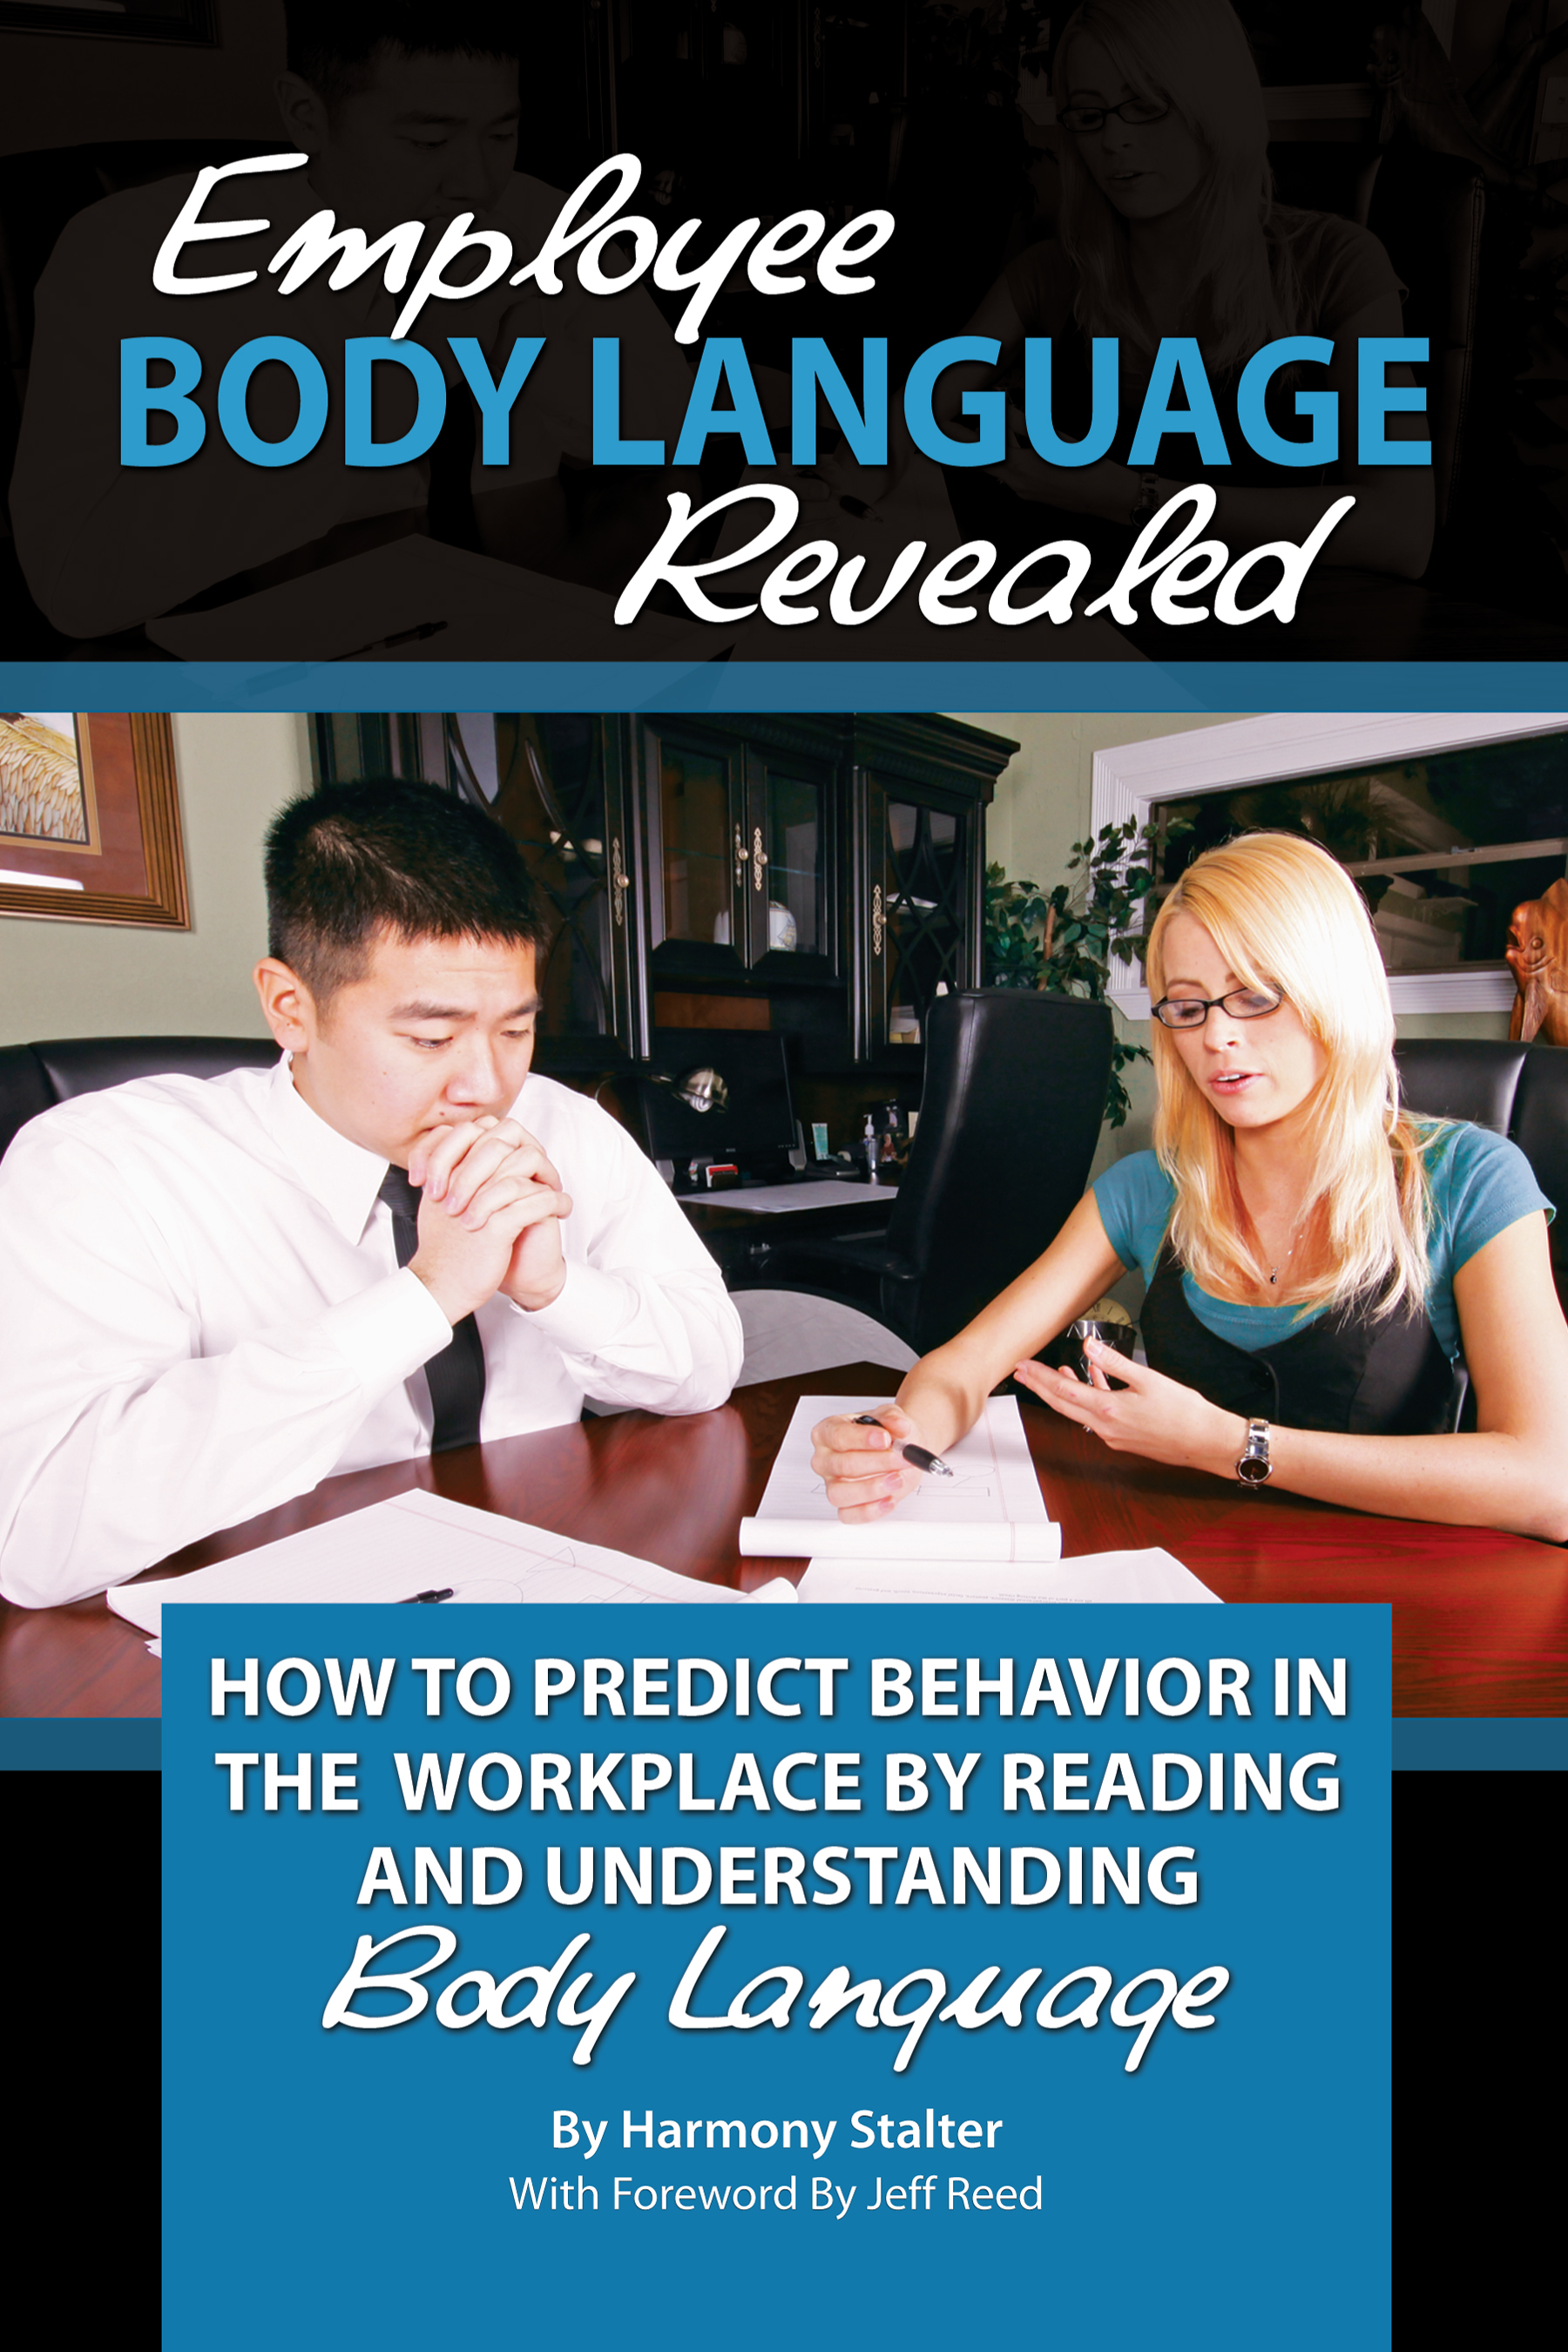 Employee Body Language Revealed How to Predict Behavior in the Workplace by Reading and Understanding Body Language